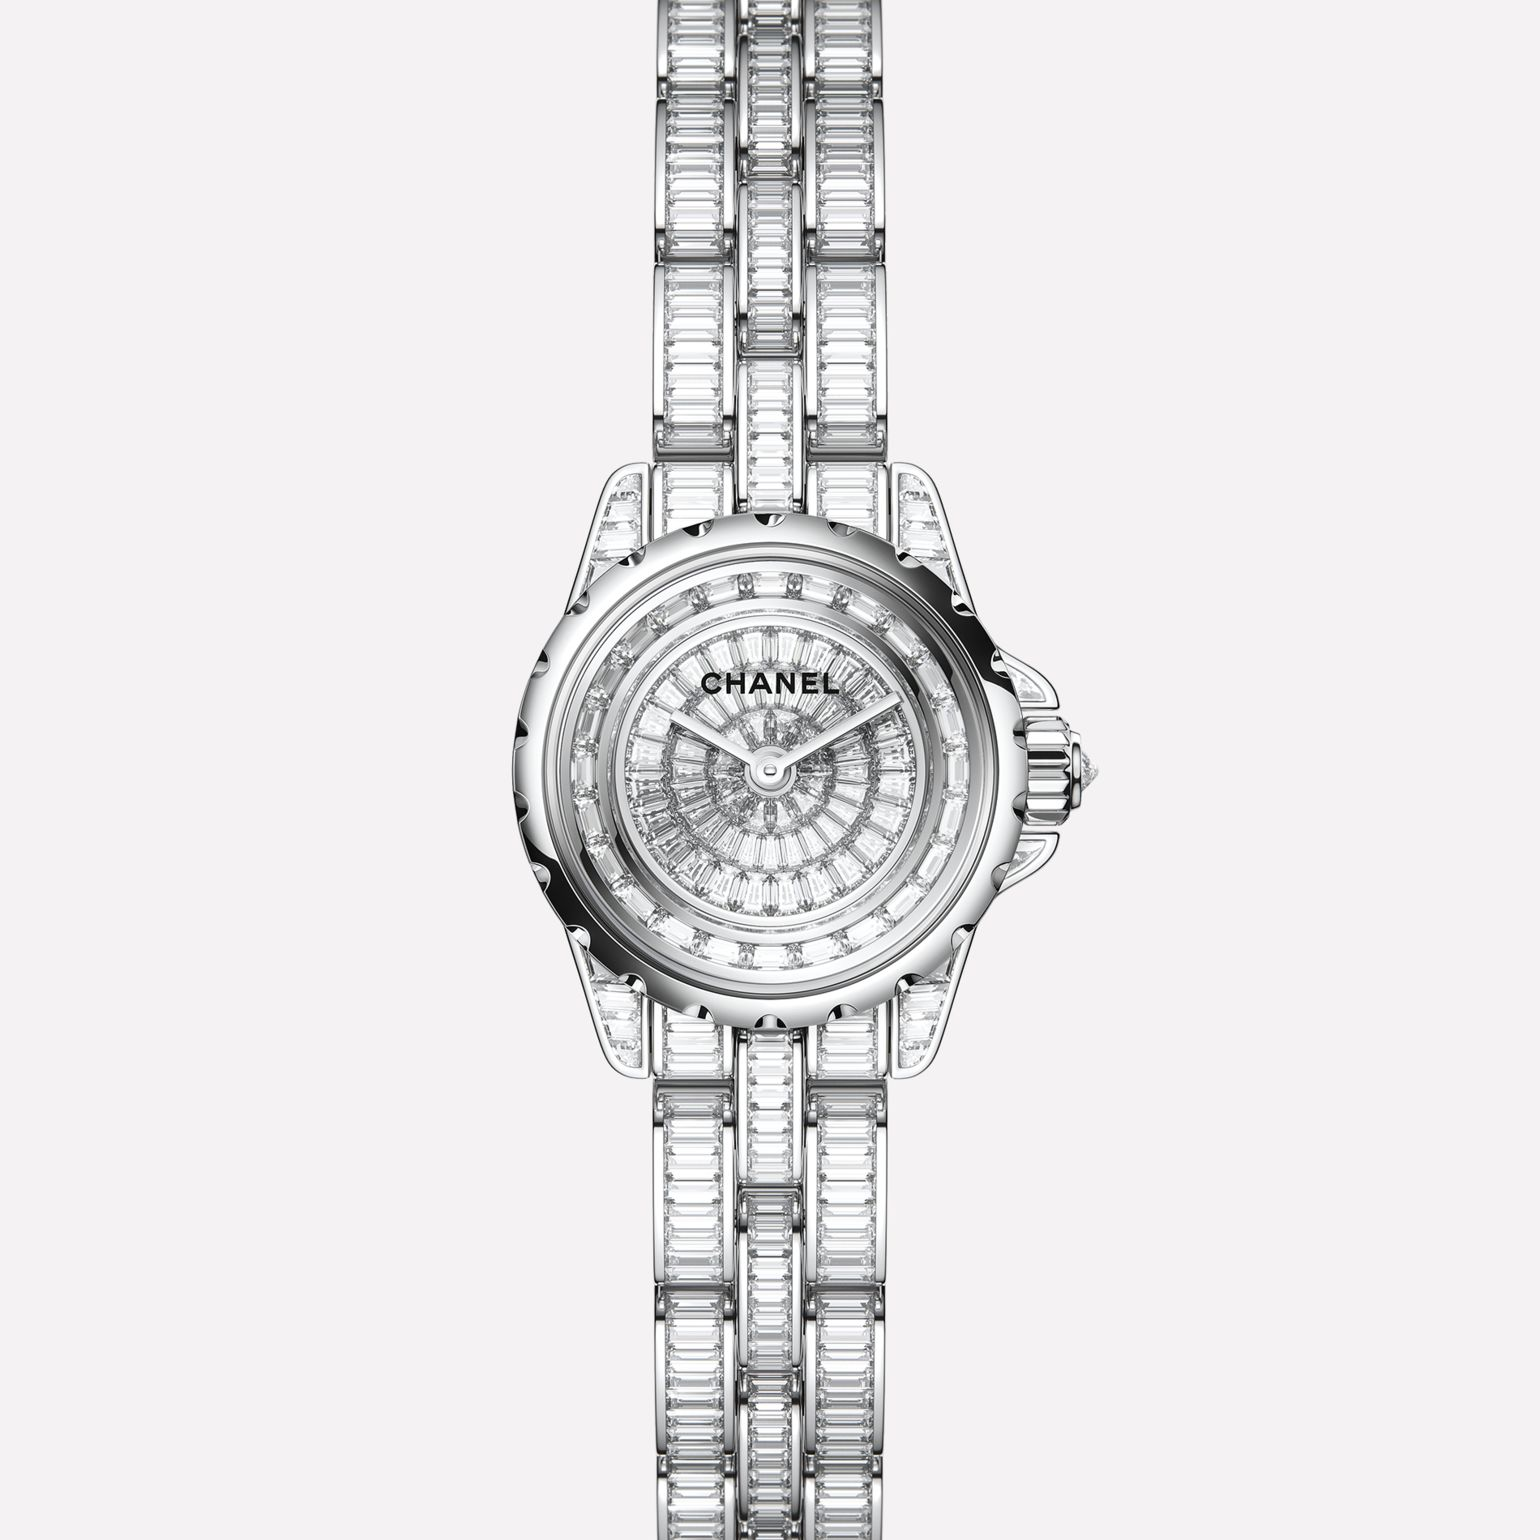 J12·XS High Jewellery White gold, case, dial, flange and bracelet set with baguette cut diamonds